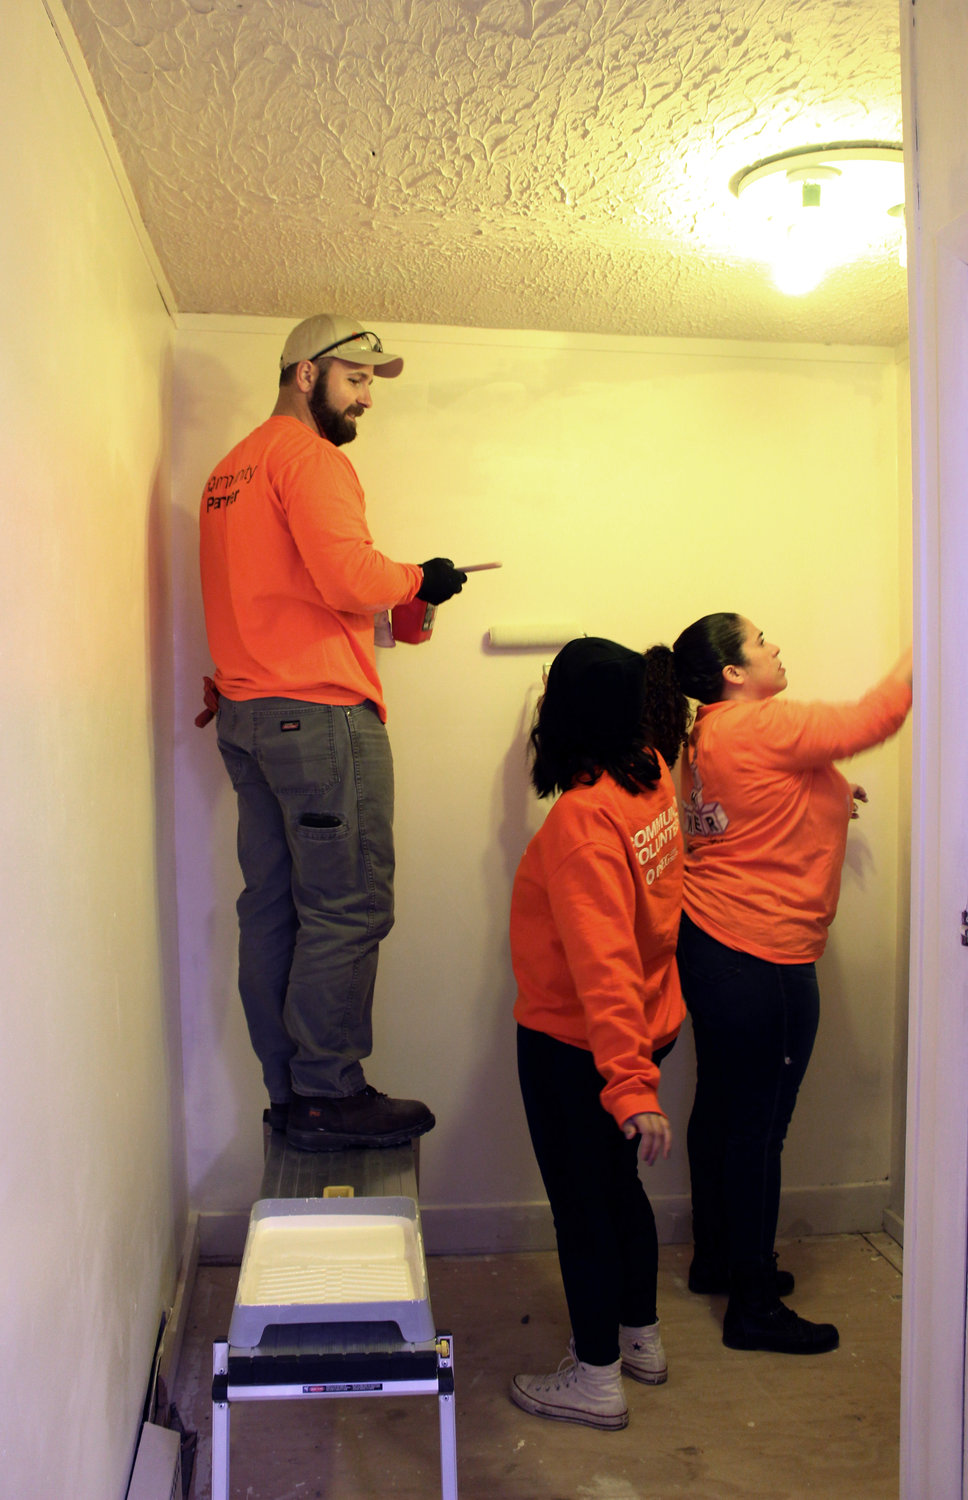 The American Legion started raising funds in May 2018 to complete the building's first renovations since the post acquired it in 1935. Chris Pezzino, Margarita Maltes and Olivia Ramos helped paint the walls.